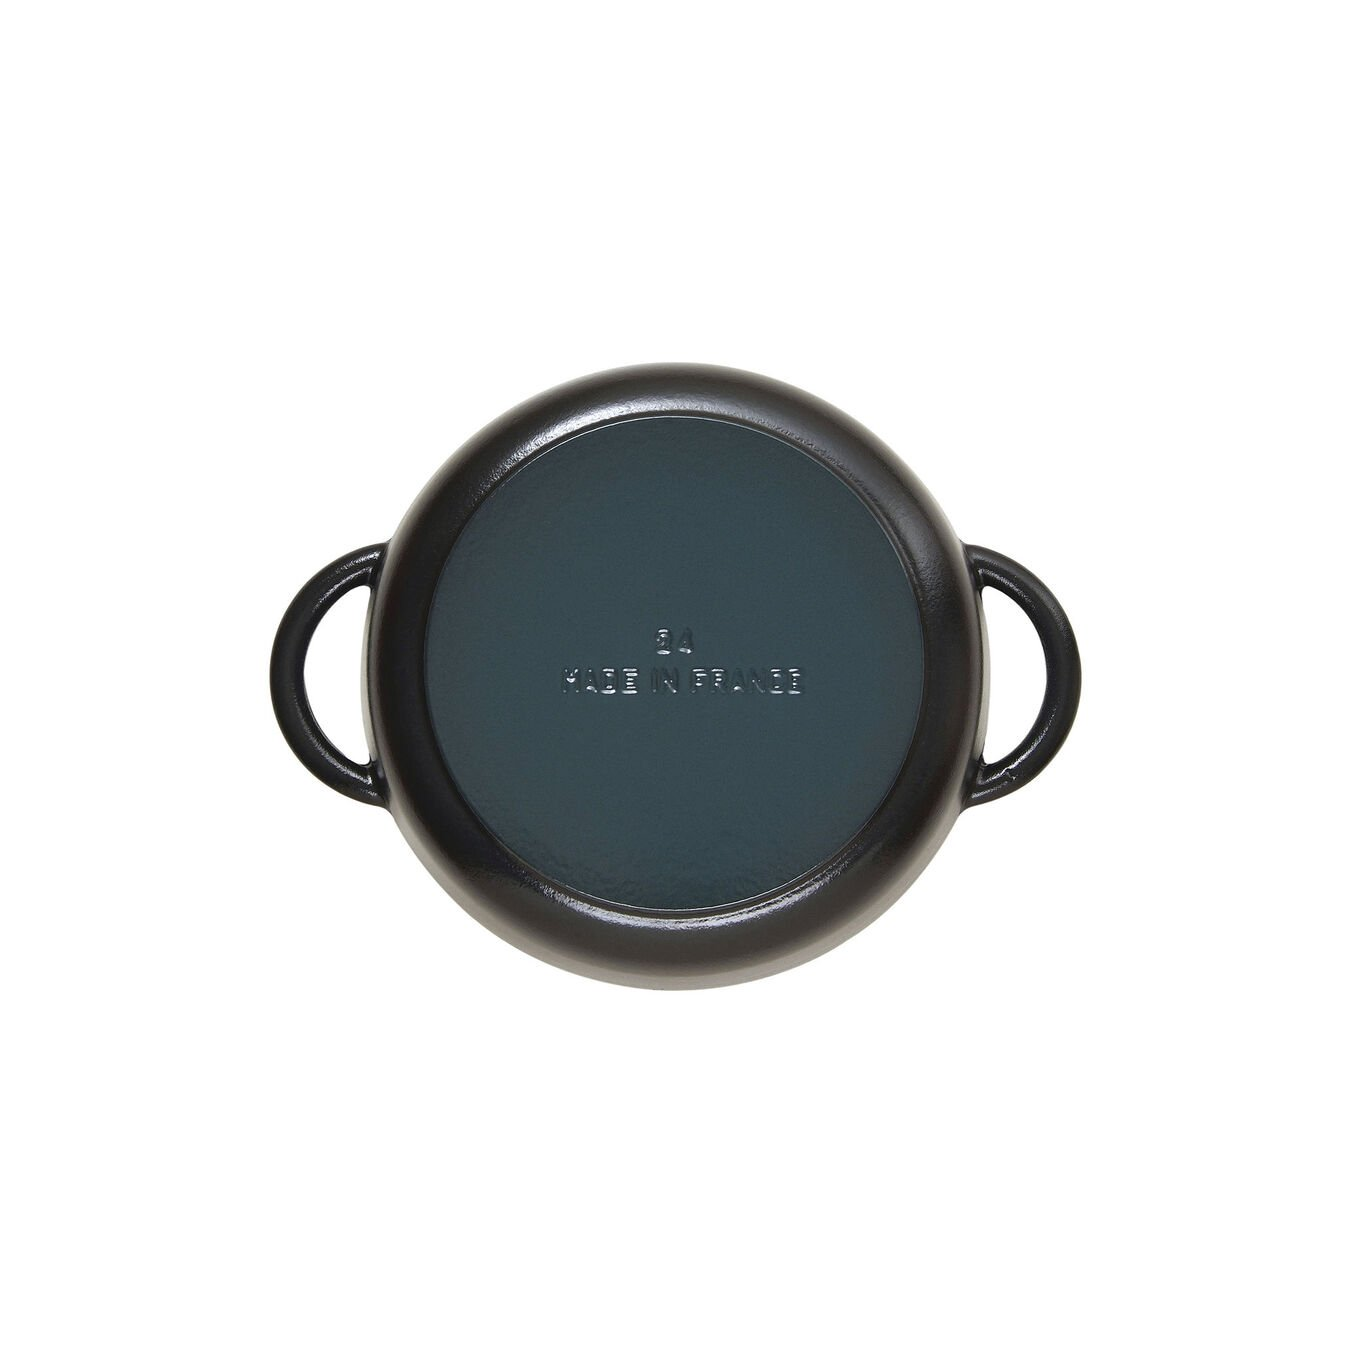 Sauteuse with glass lid 28 cm,,large 5